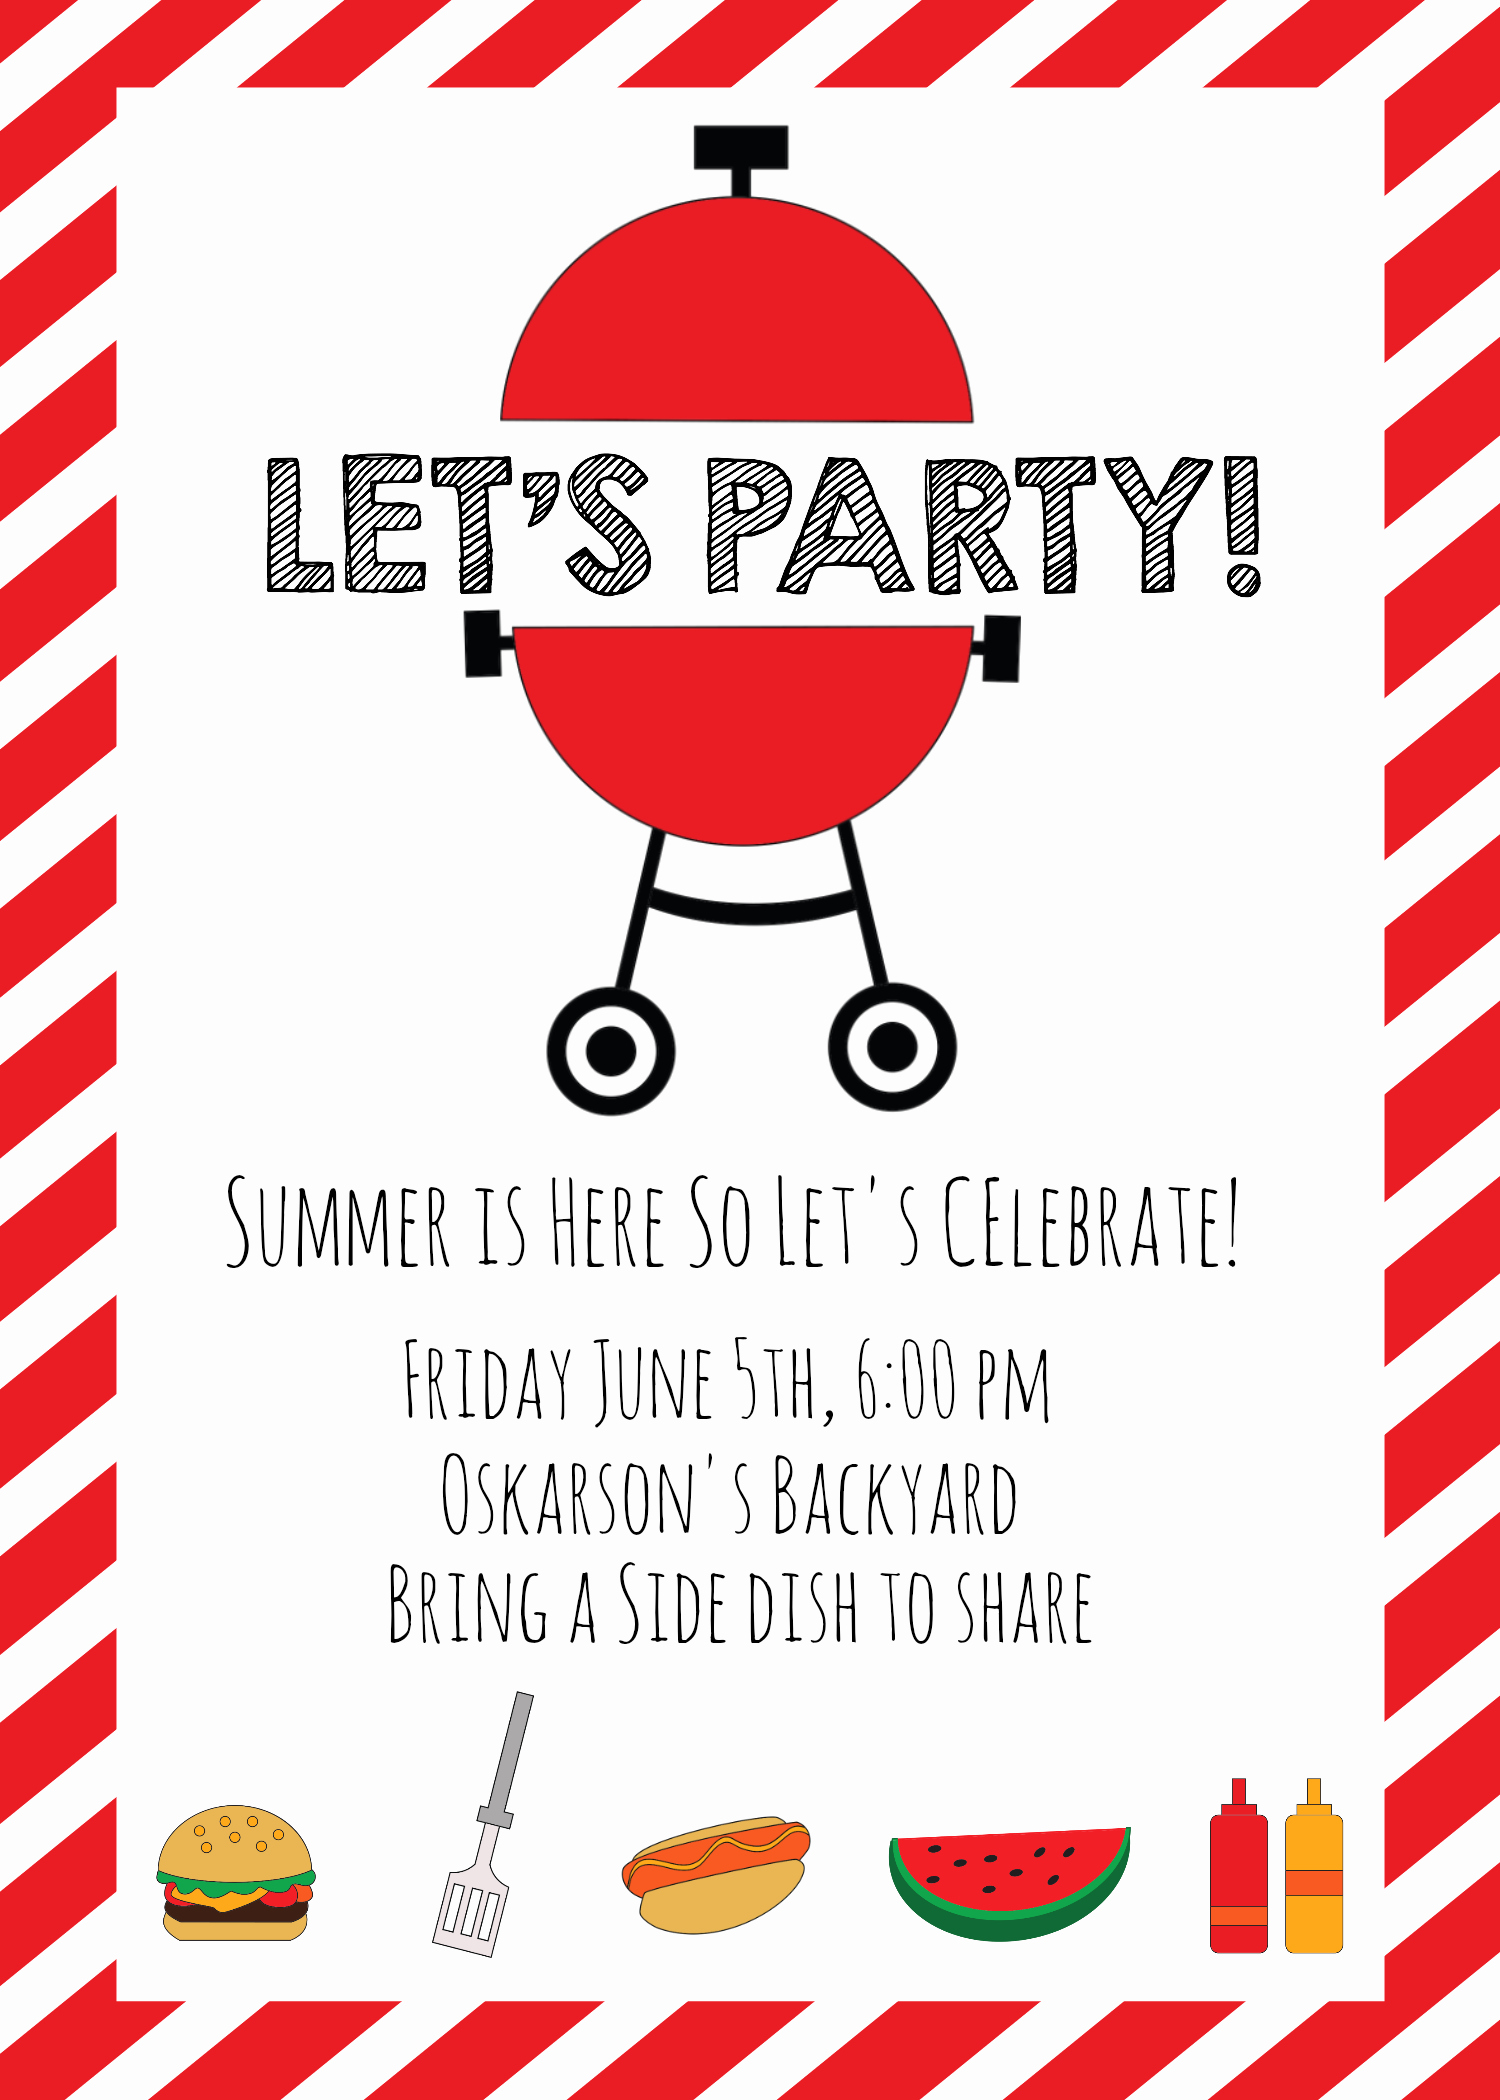 Free Downloadable Bbq Invitation Template Lovely Summer Bbq Invitations and Ideas